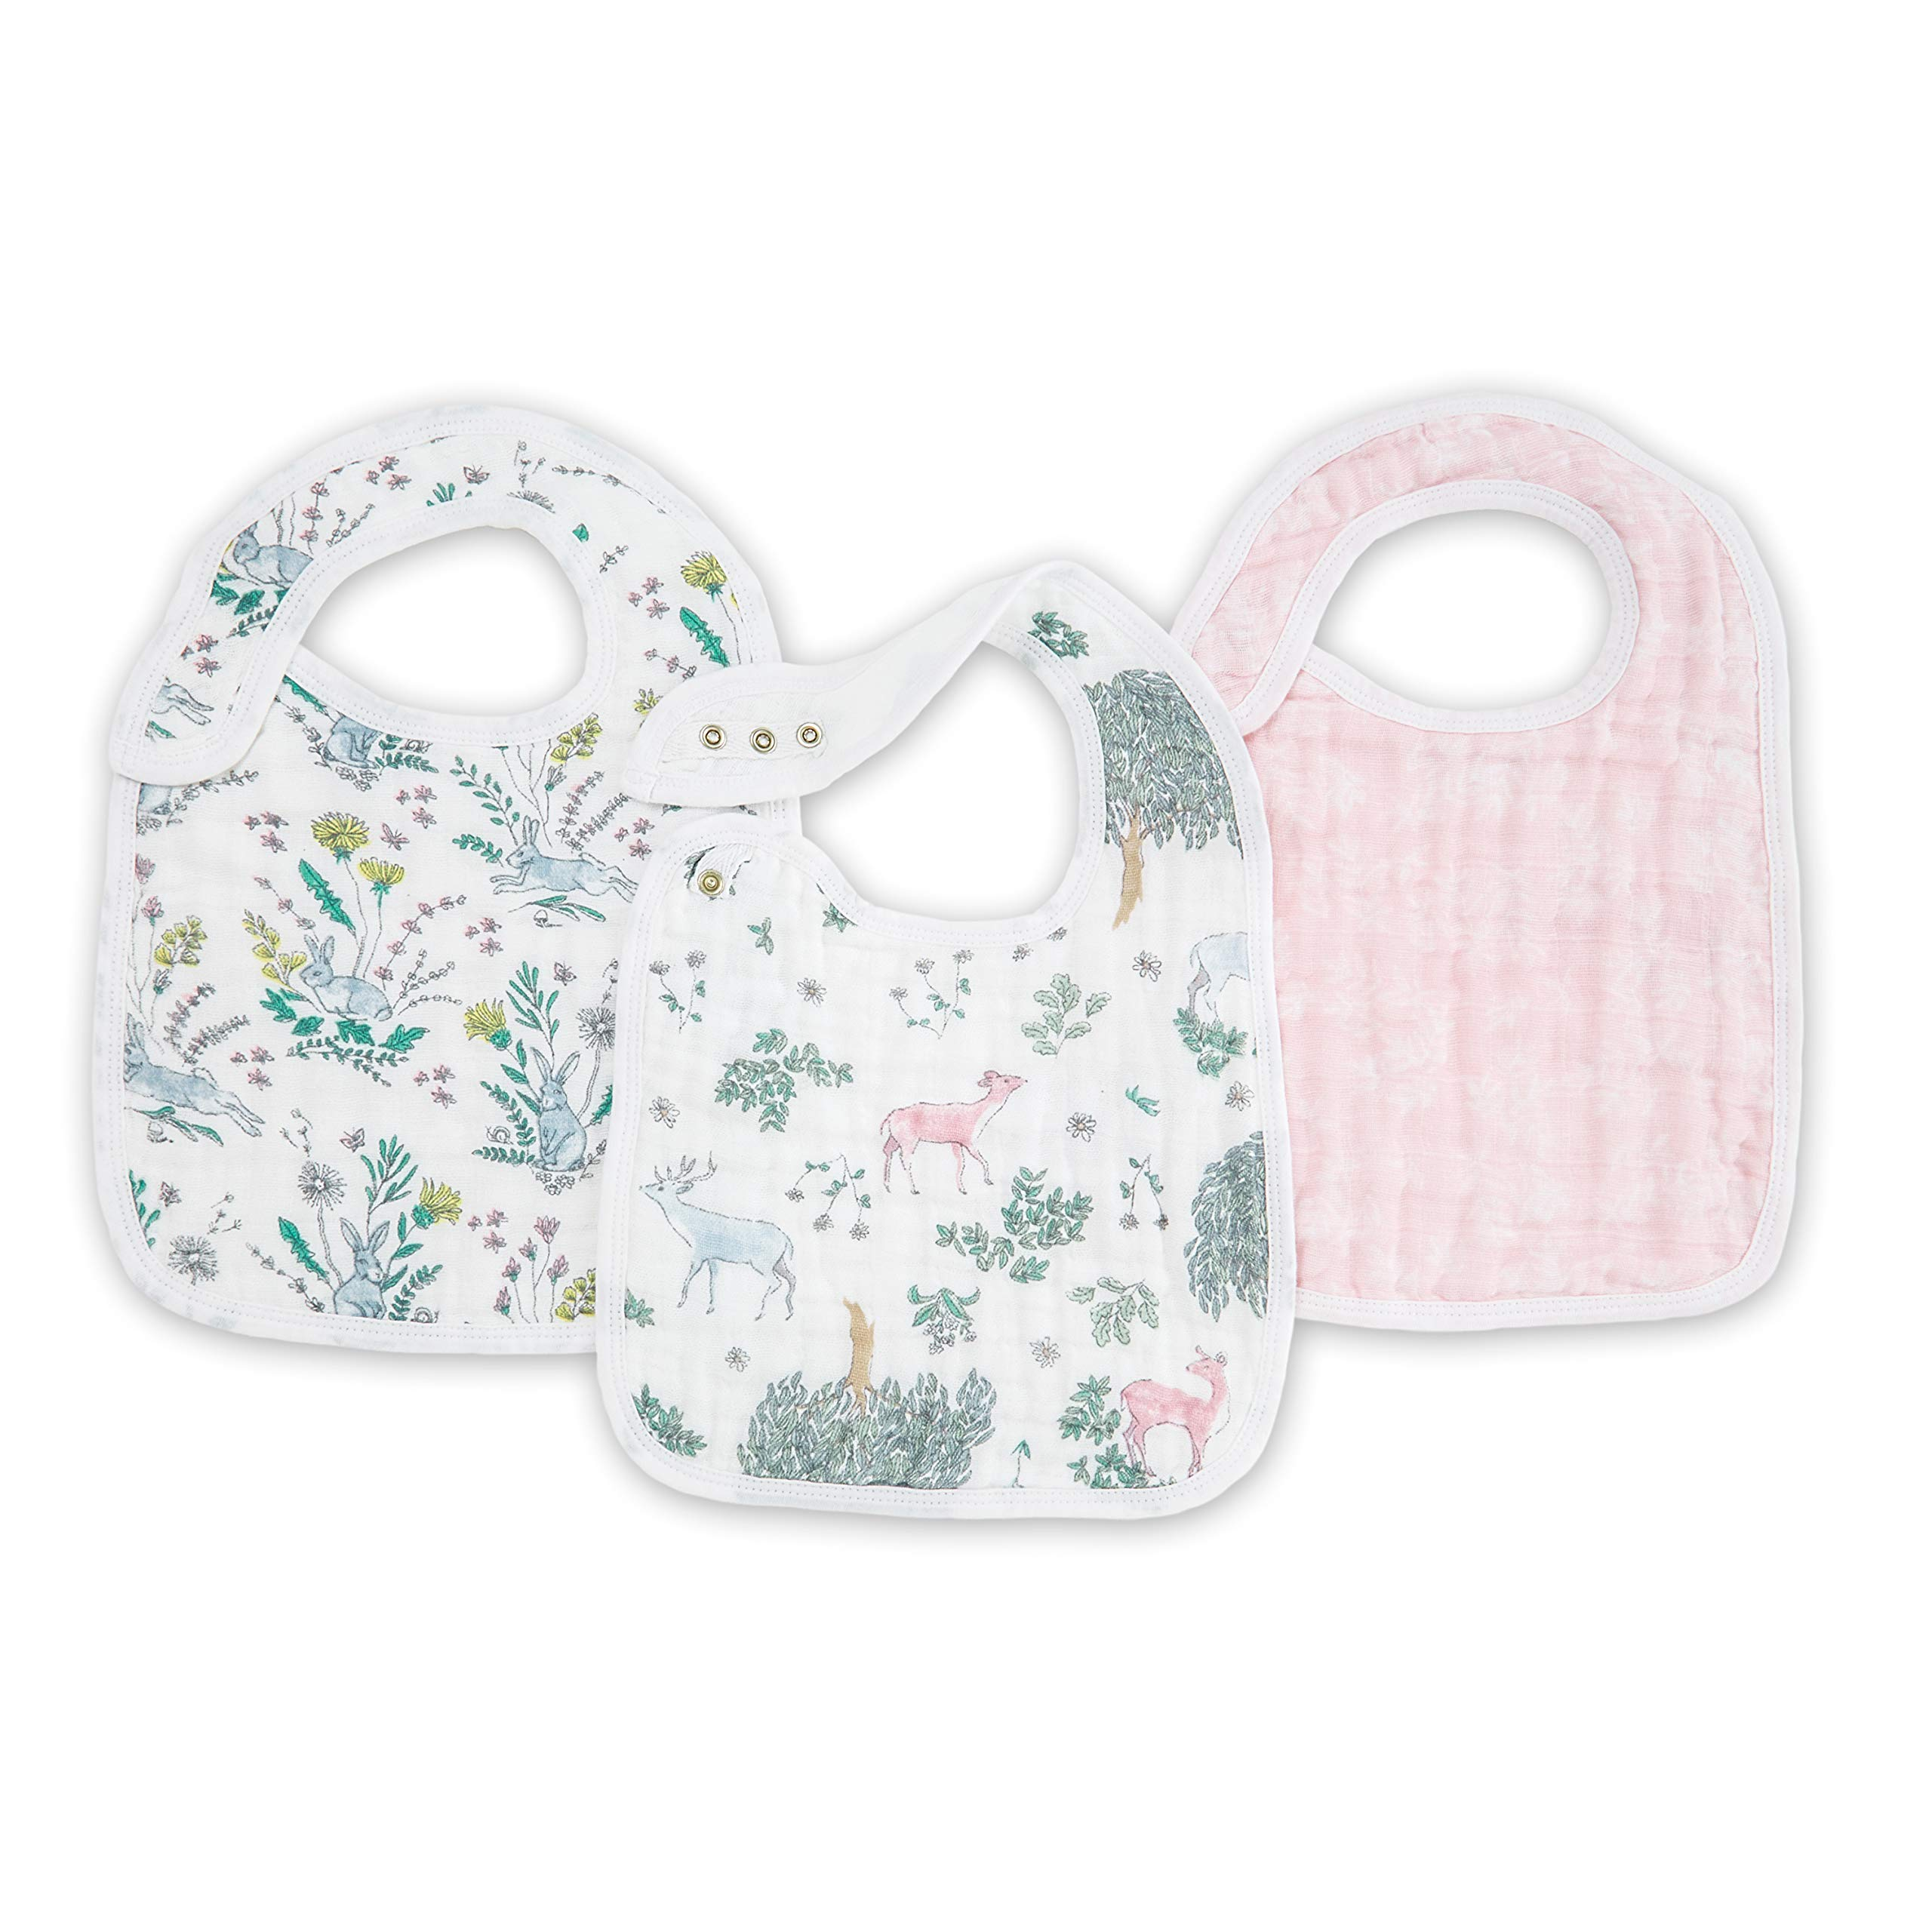 aden + anais Classic Snap Bib 3-Pack Forest Fantasy by aden + anais